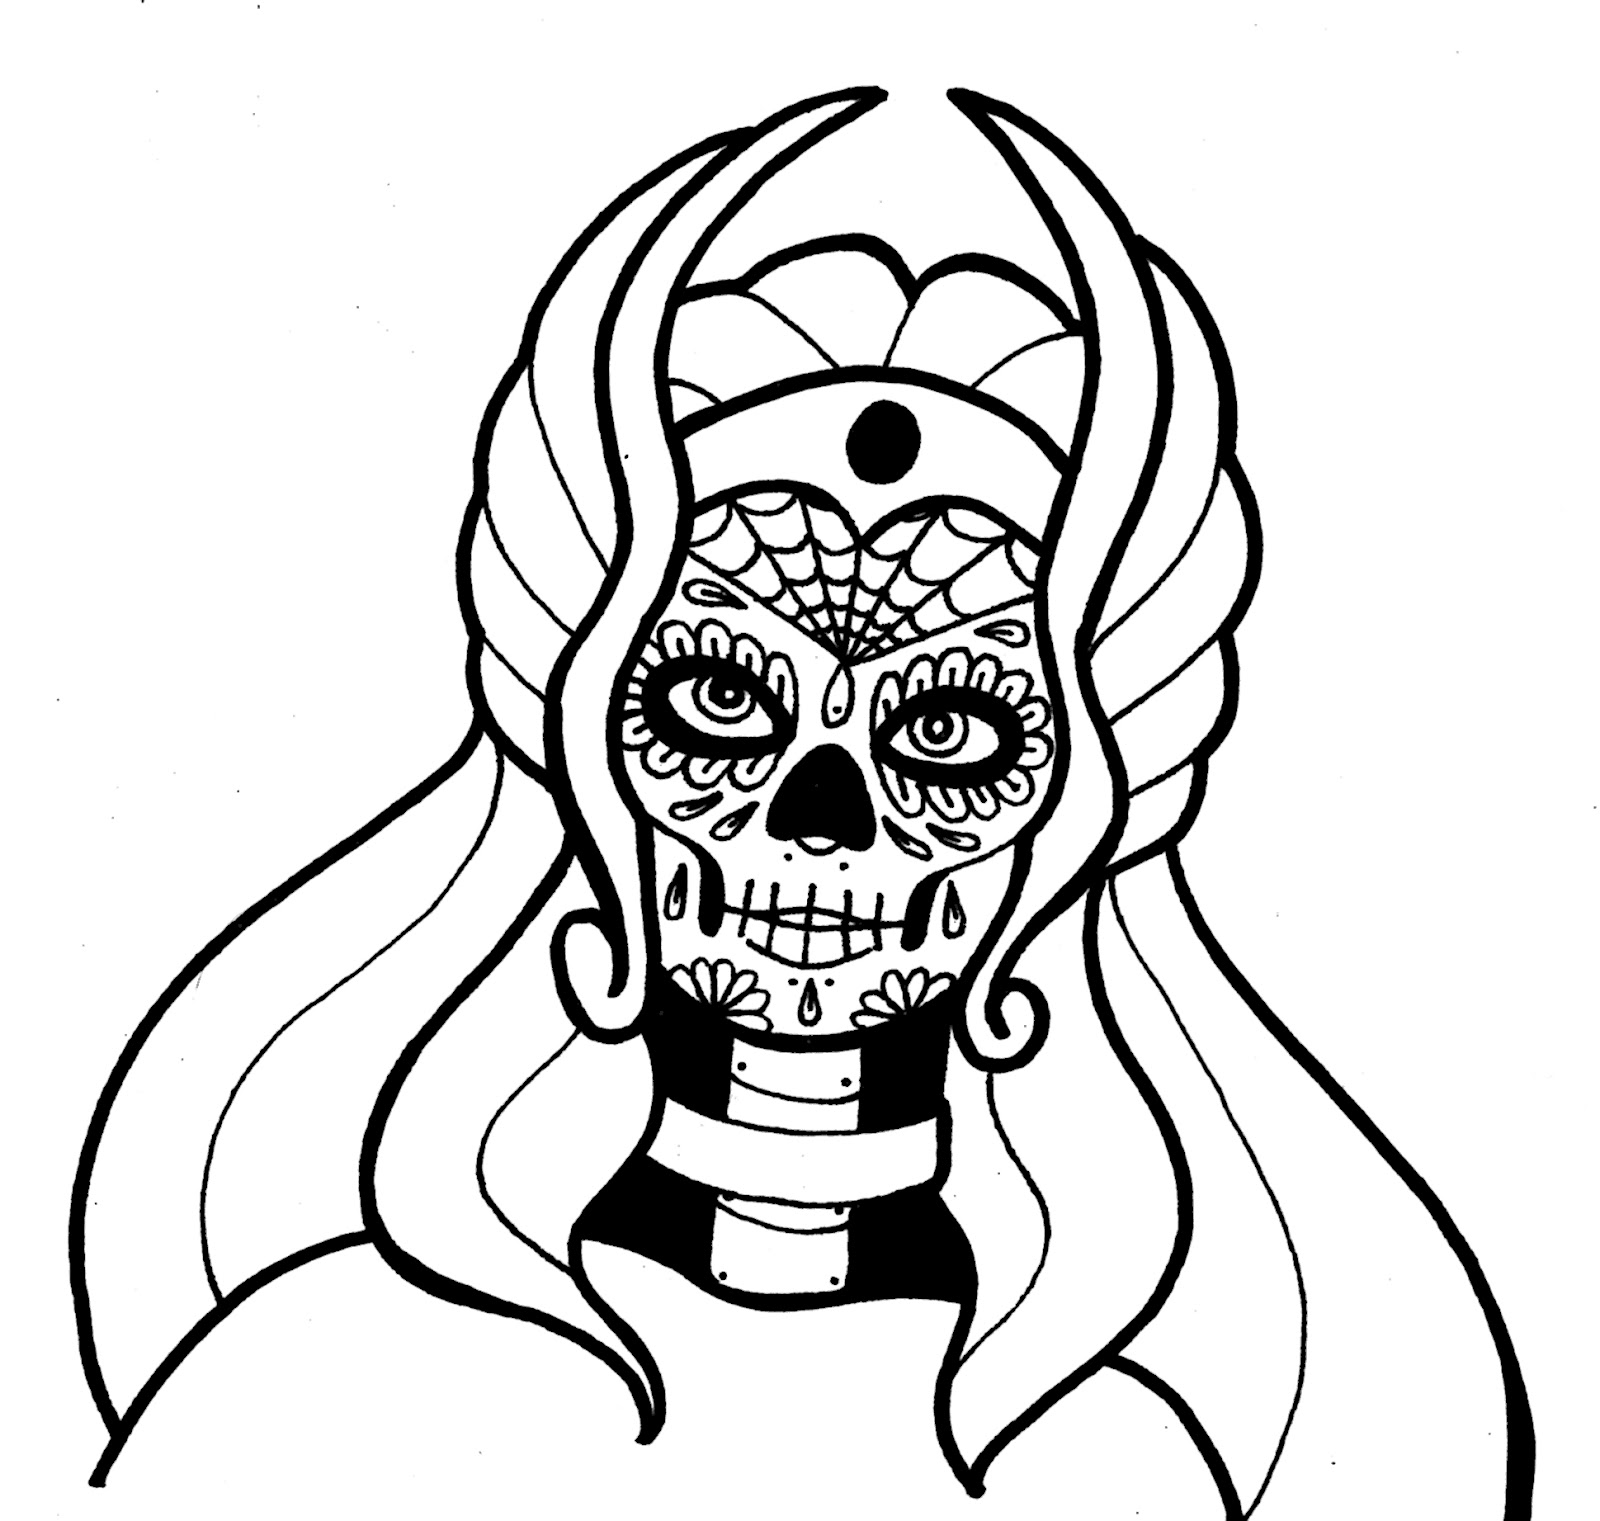 Yucca Flats, N.M.: Wenchkin's coloring pages - She Ra ...